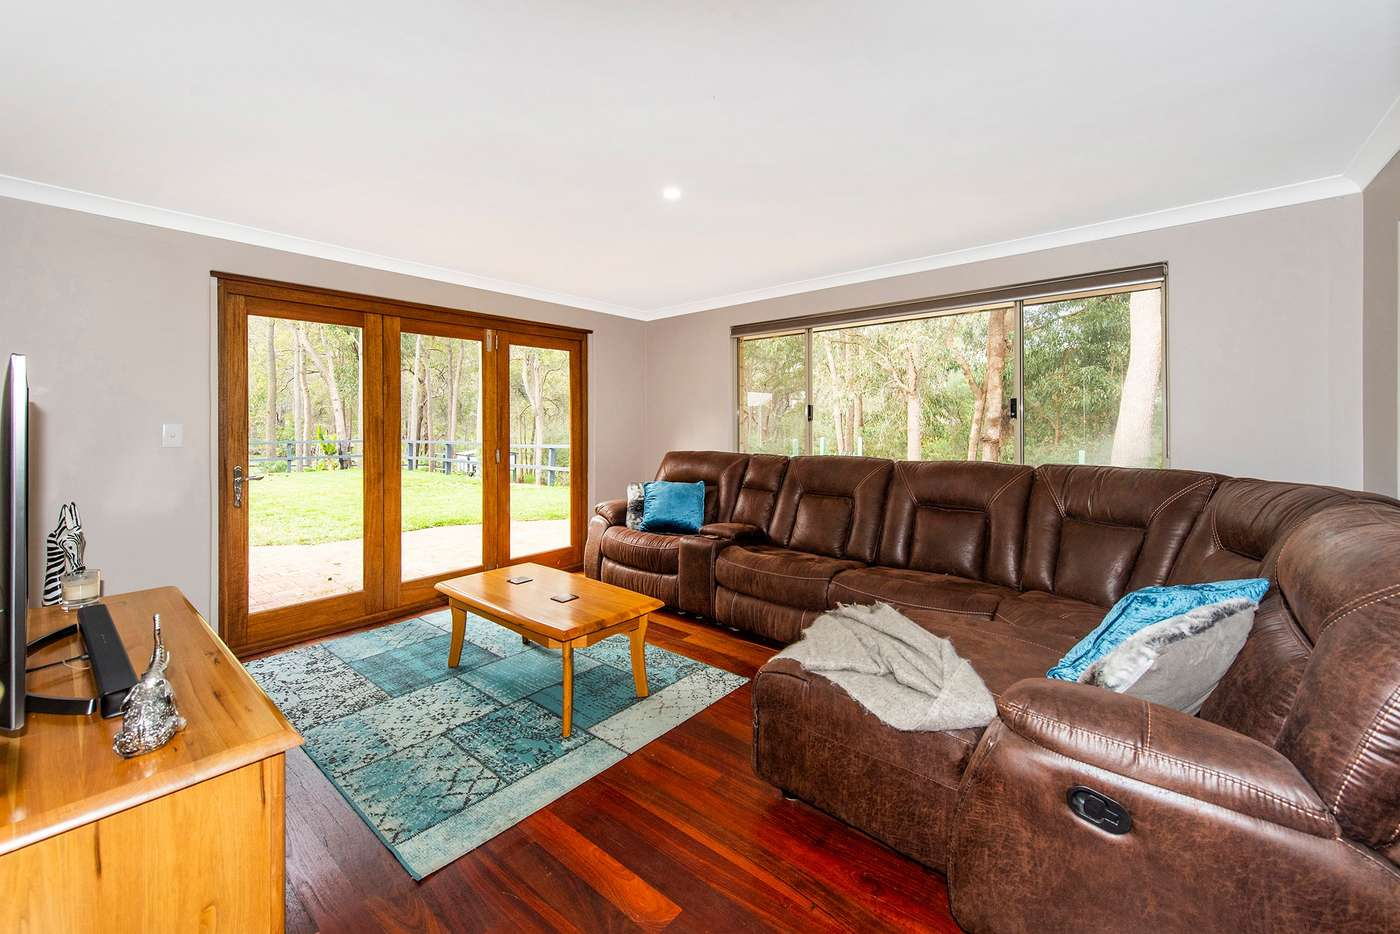 Sixth view of Homely house listing, 37 Oak Way, Baldivis WA 6171